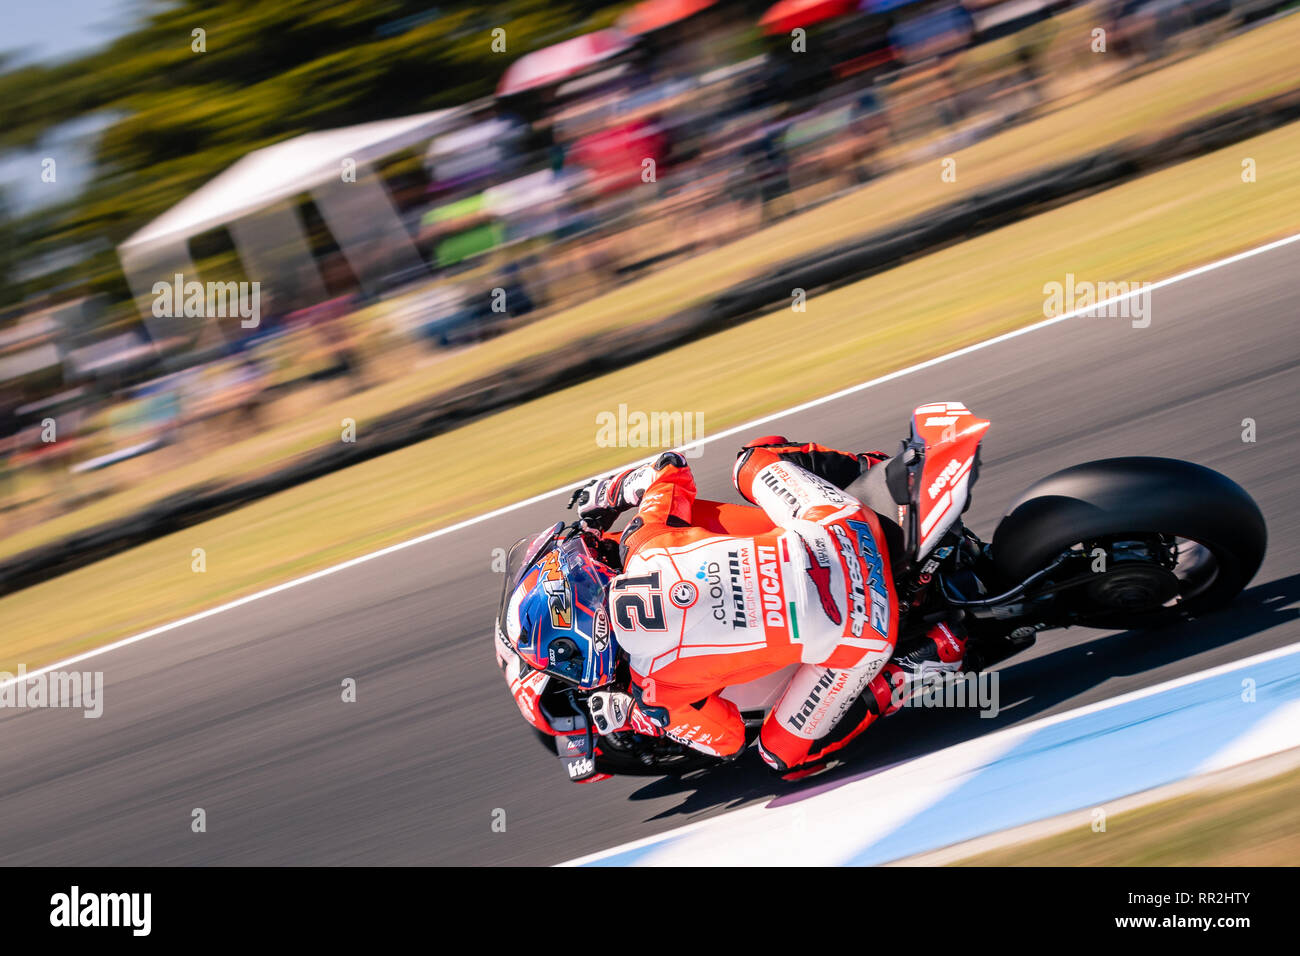 Melbourne, Australia. 24th Feb, 2019. MELBOURNE, AUSTRALIA - FEBRUARY 24: Michael Ruben Rinaldi 21 riding for GULF ALTHEA BMW Racing Team during the 2019 MOTUL FIM Superbike World Championship at Phillip Island, Australia on February 24 2019. Credit: Dave Hewison Sports/Alamy Live News Stock Photo